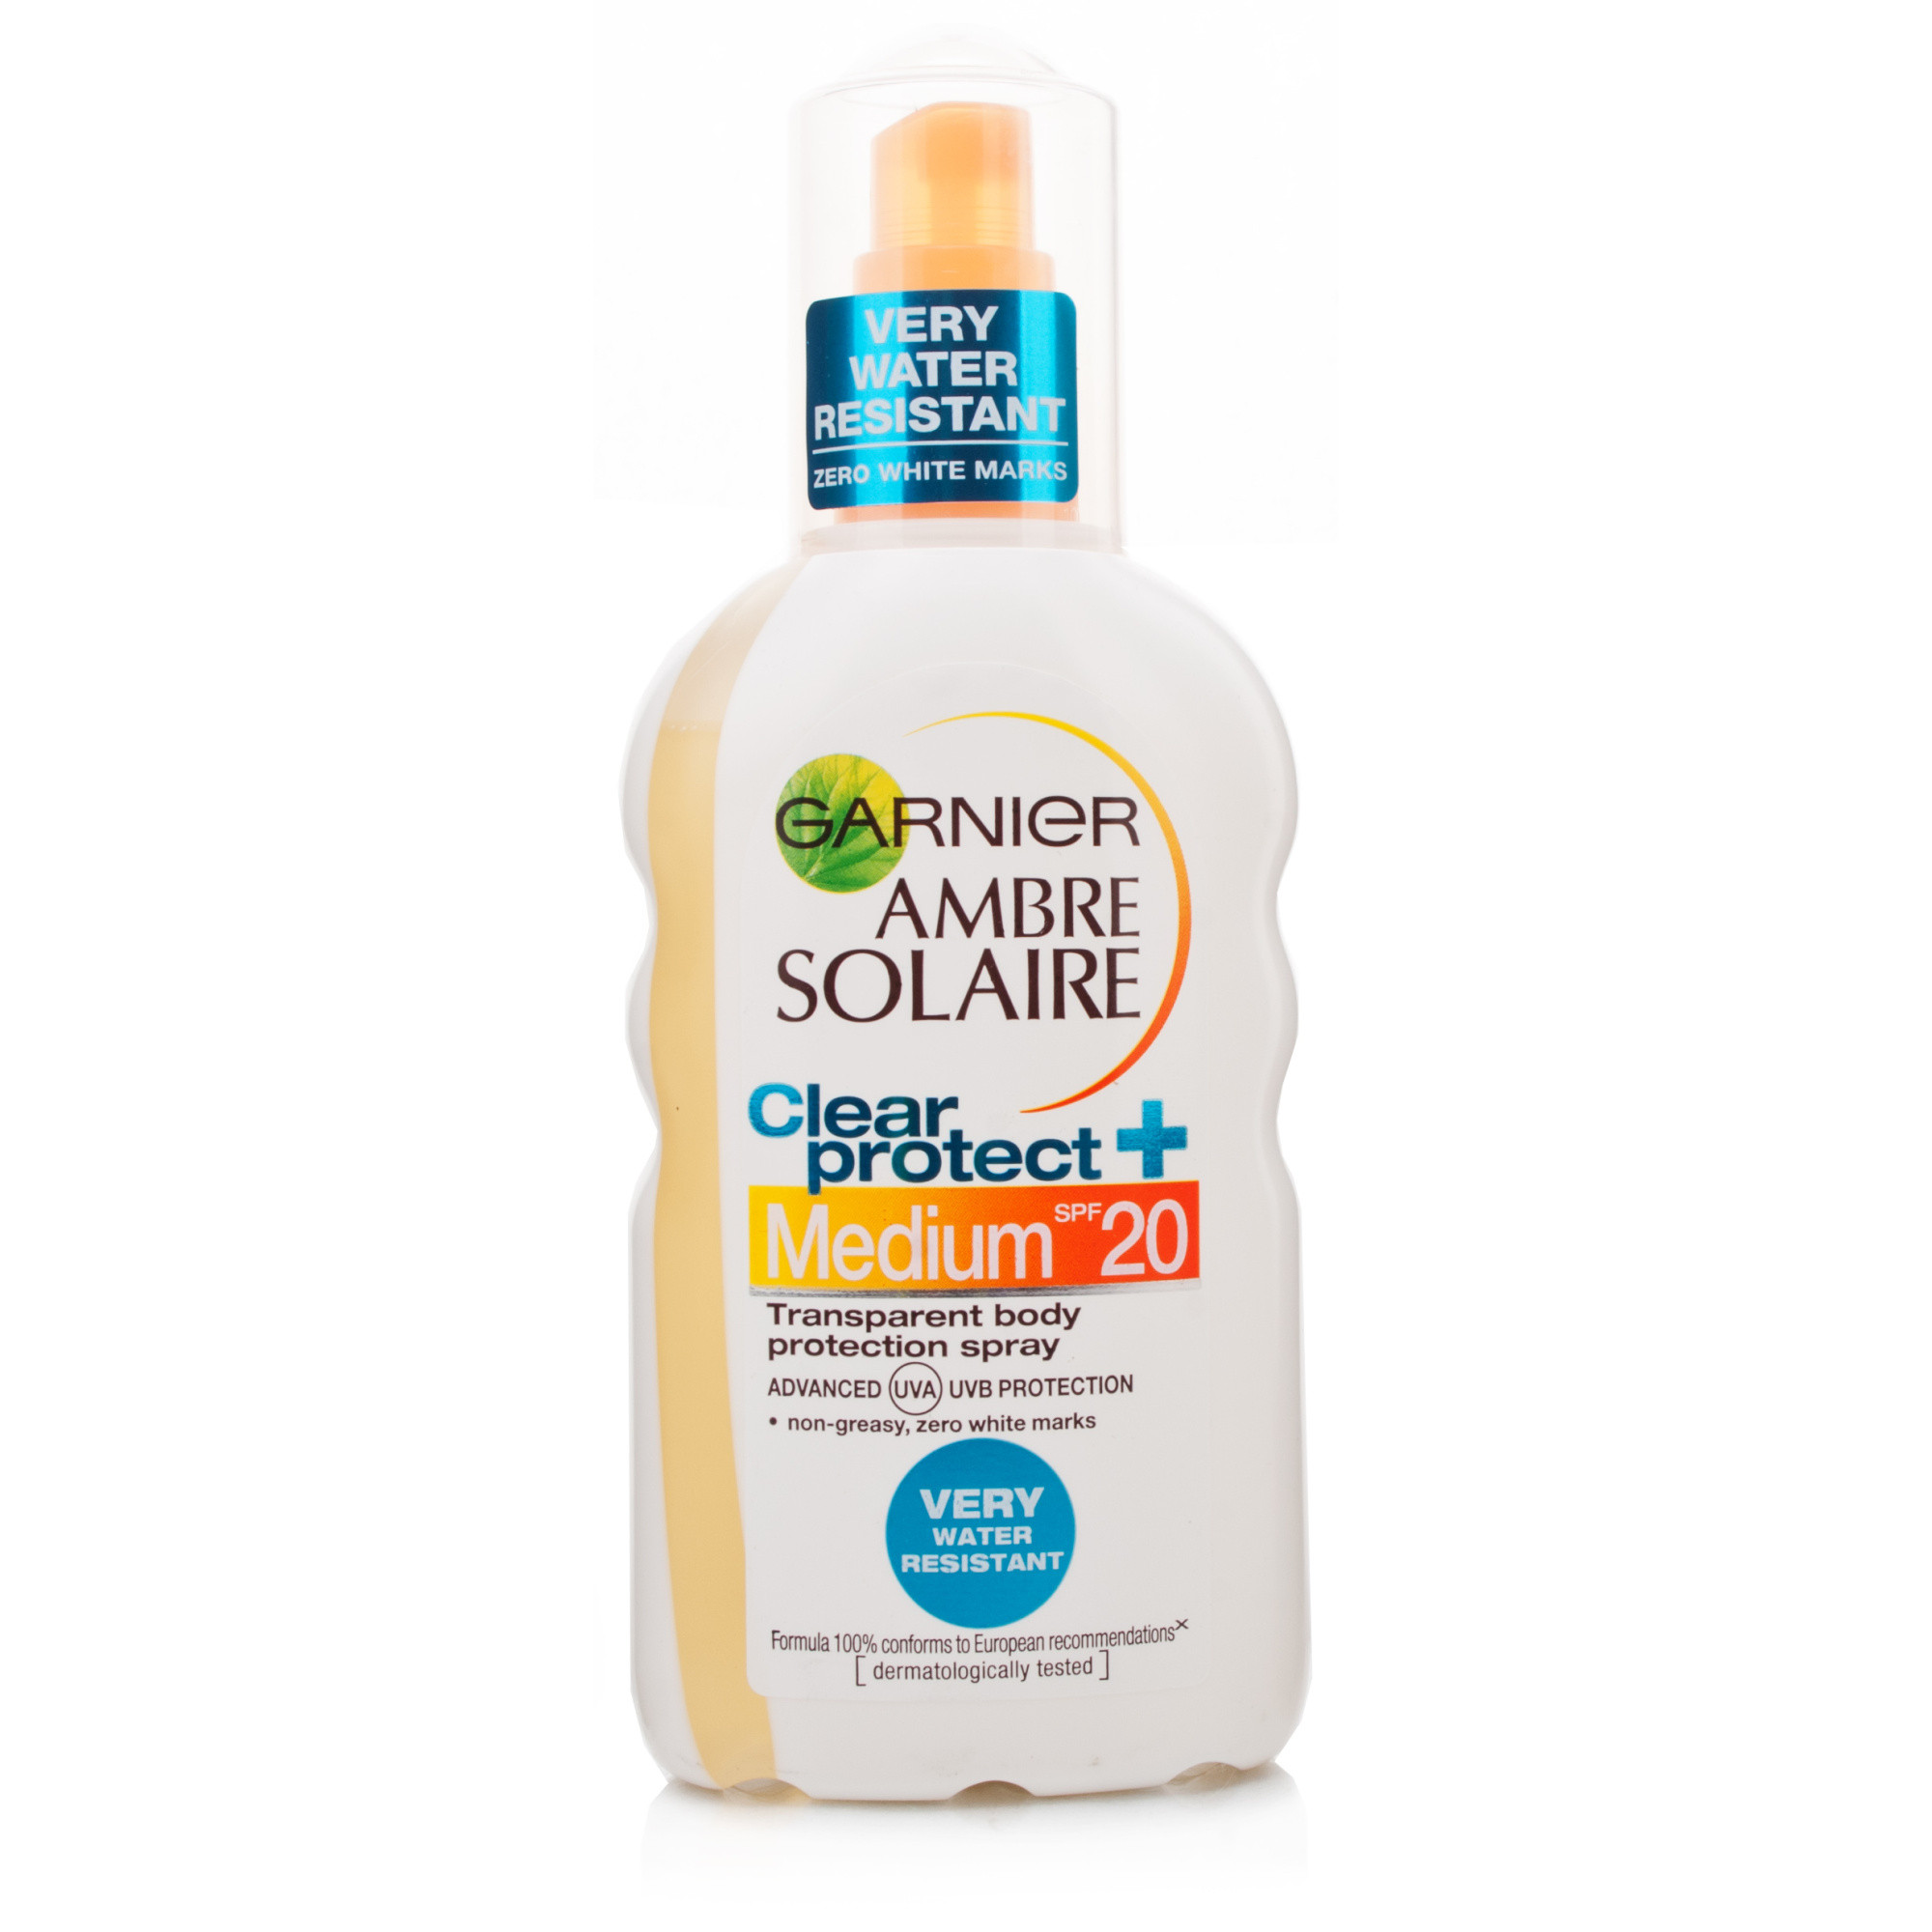 Garnier Ambre Solaire Clear Protect Spray SPF20